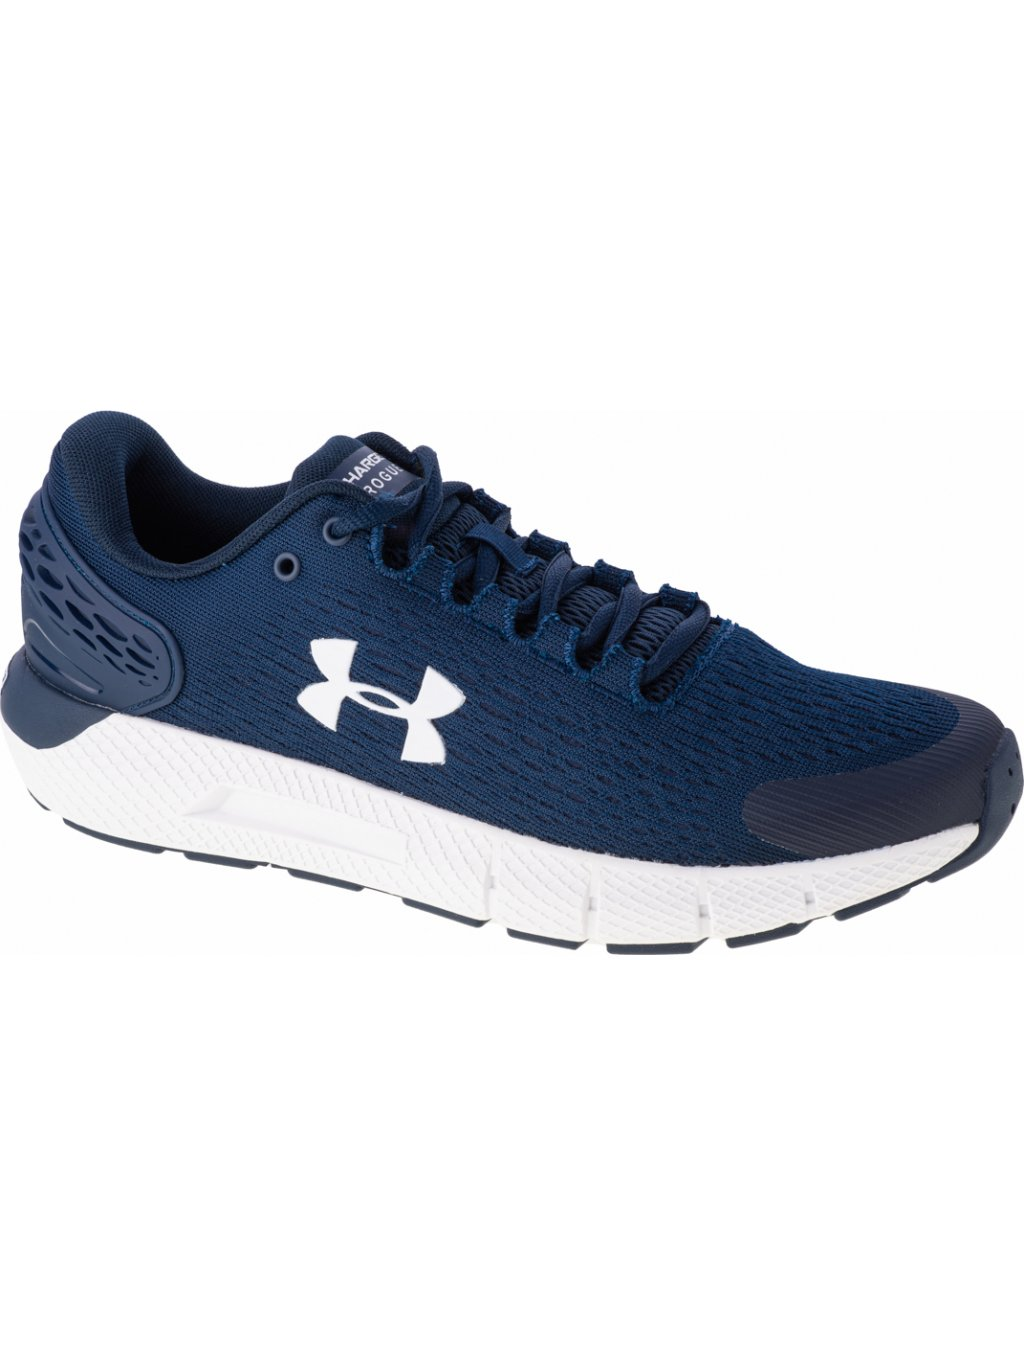 UNDER ARMOUR CHARGED ROGUE 2 3022592-403